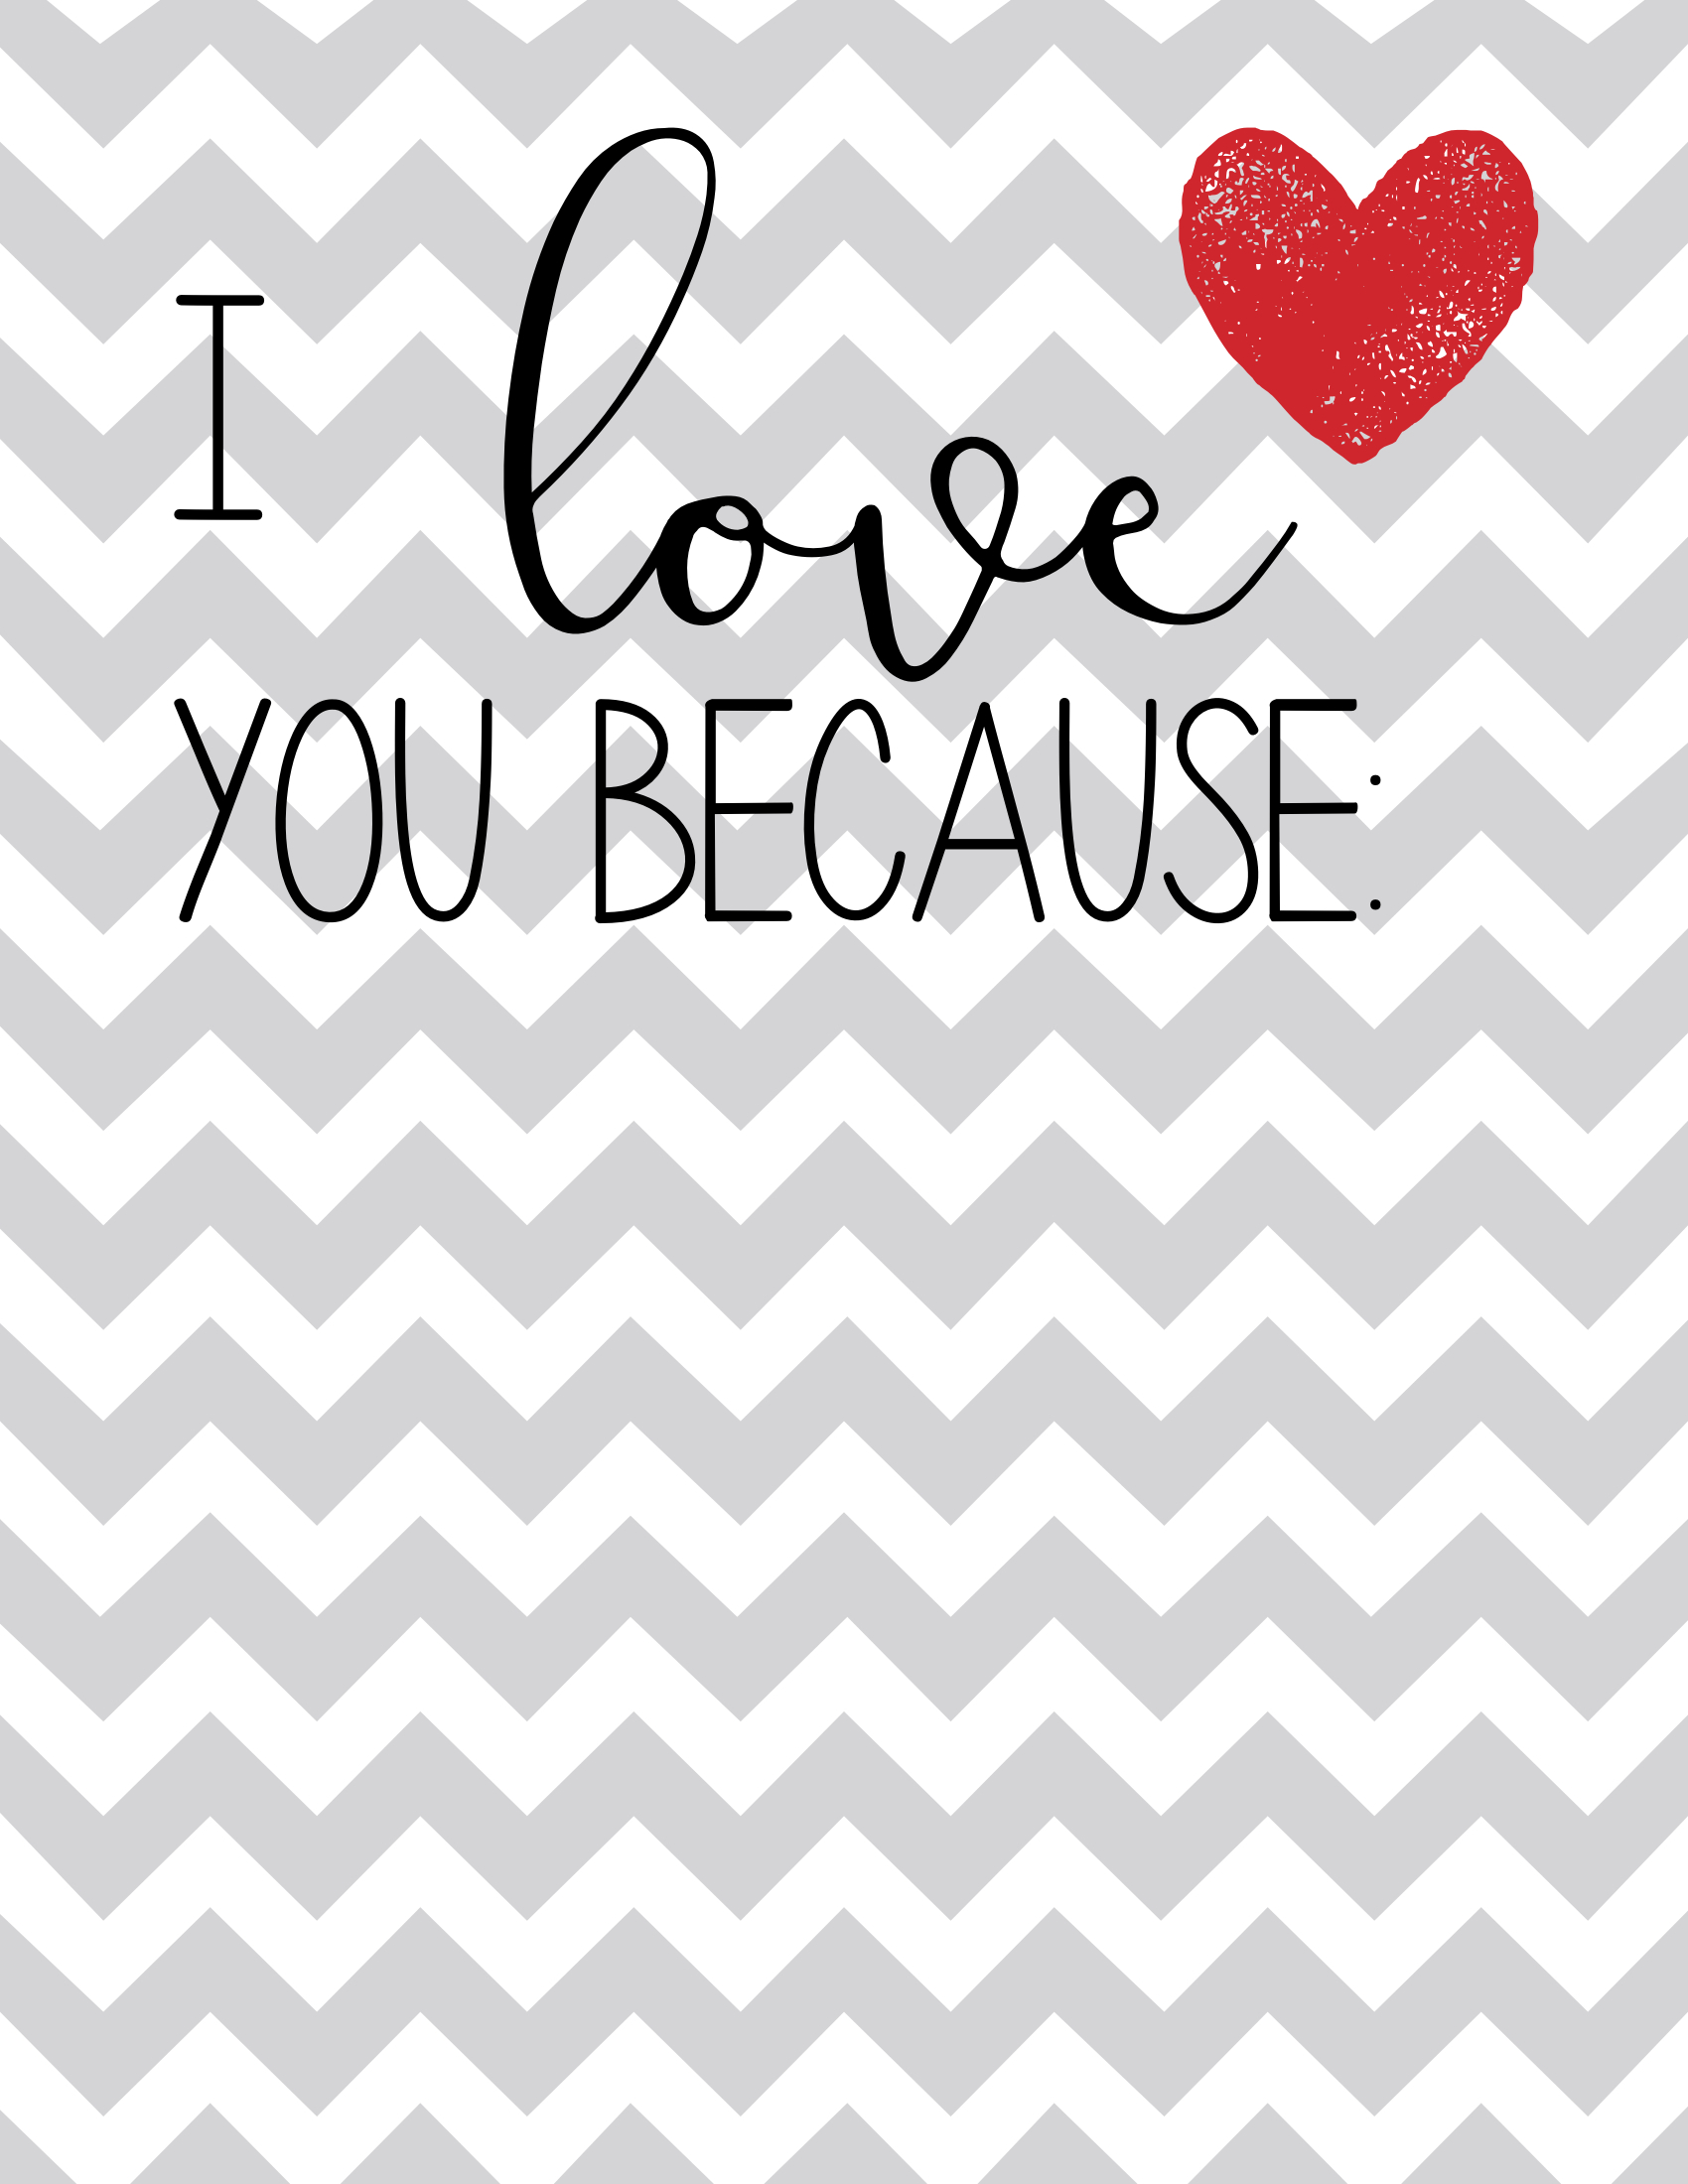 Free Printable: I Love You Because Poster - Paper Trail Design